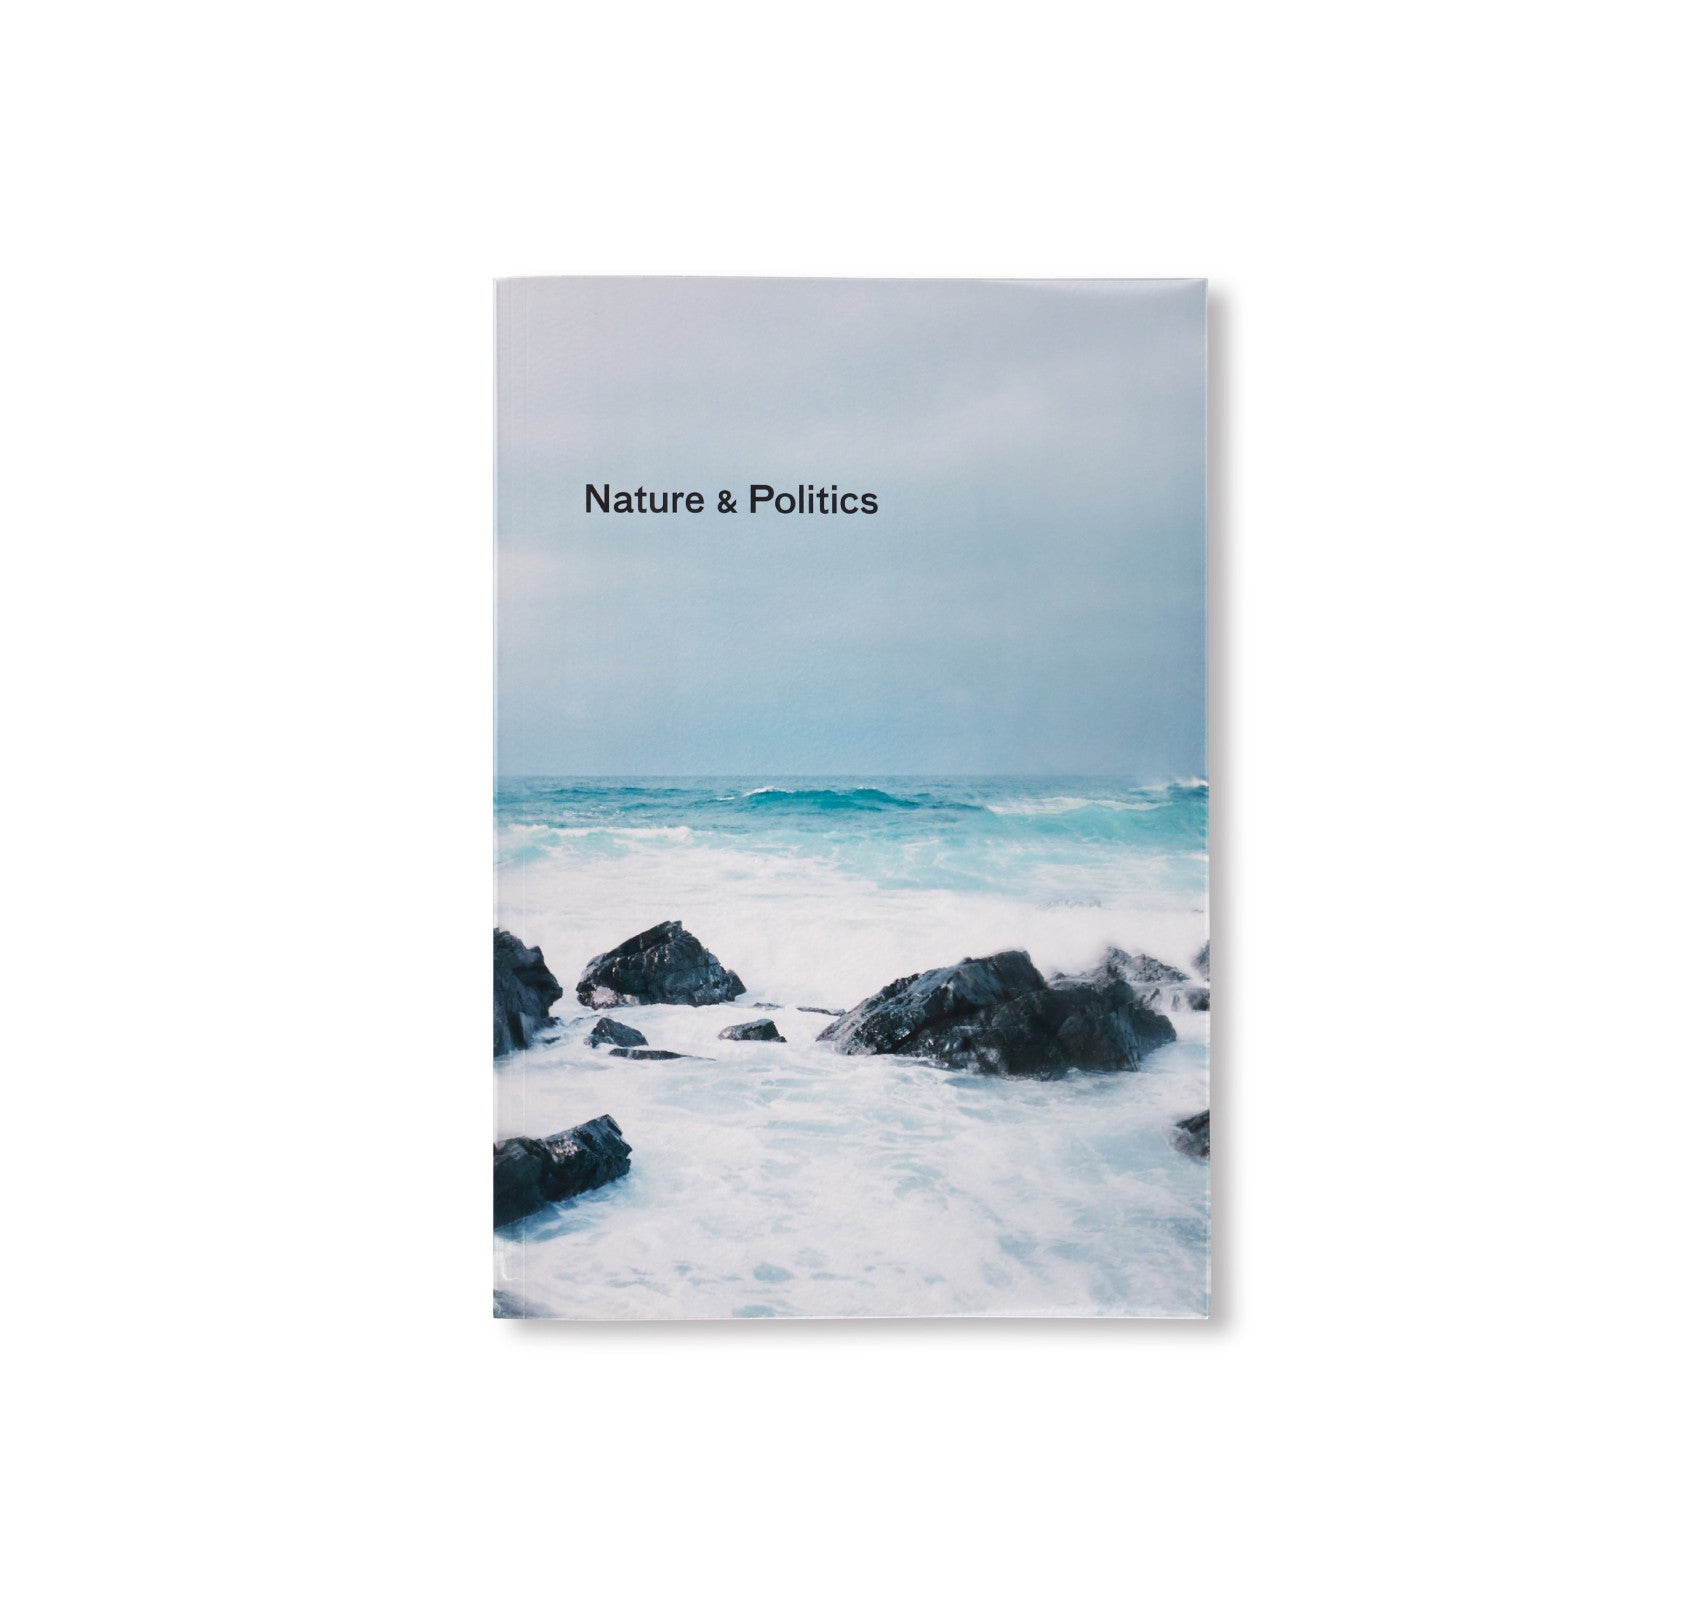 NATURE & POLITICS by Thomas Struth